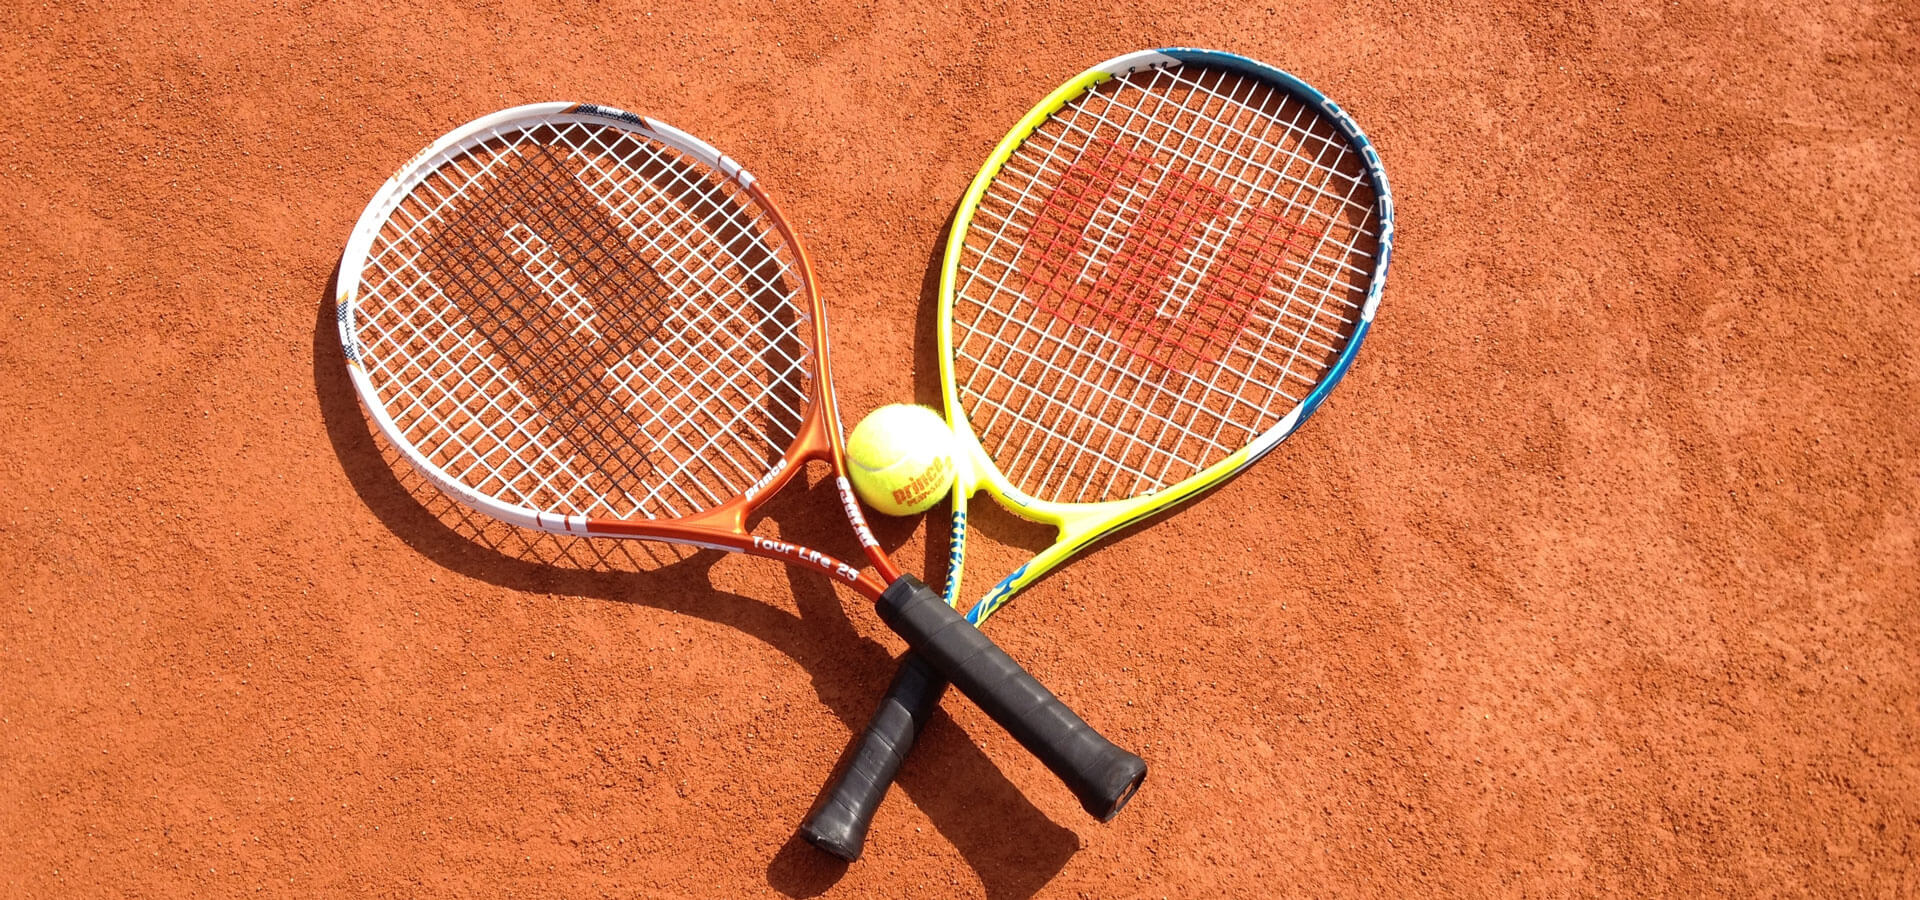 Tennis_Gratis-Racket